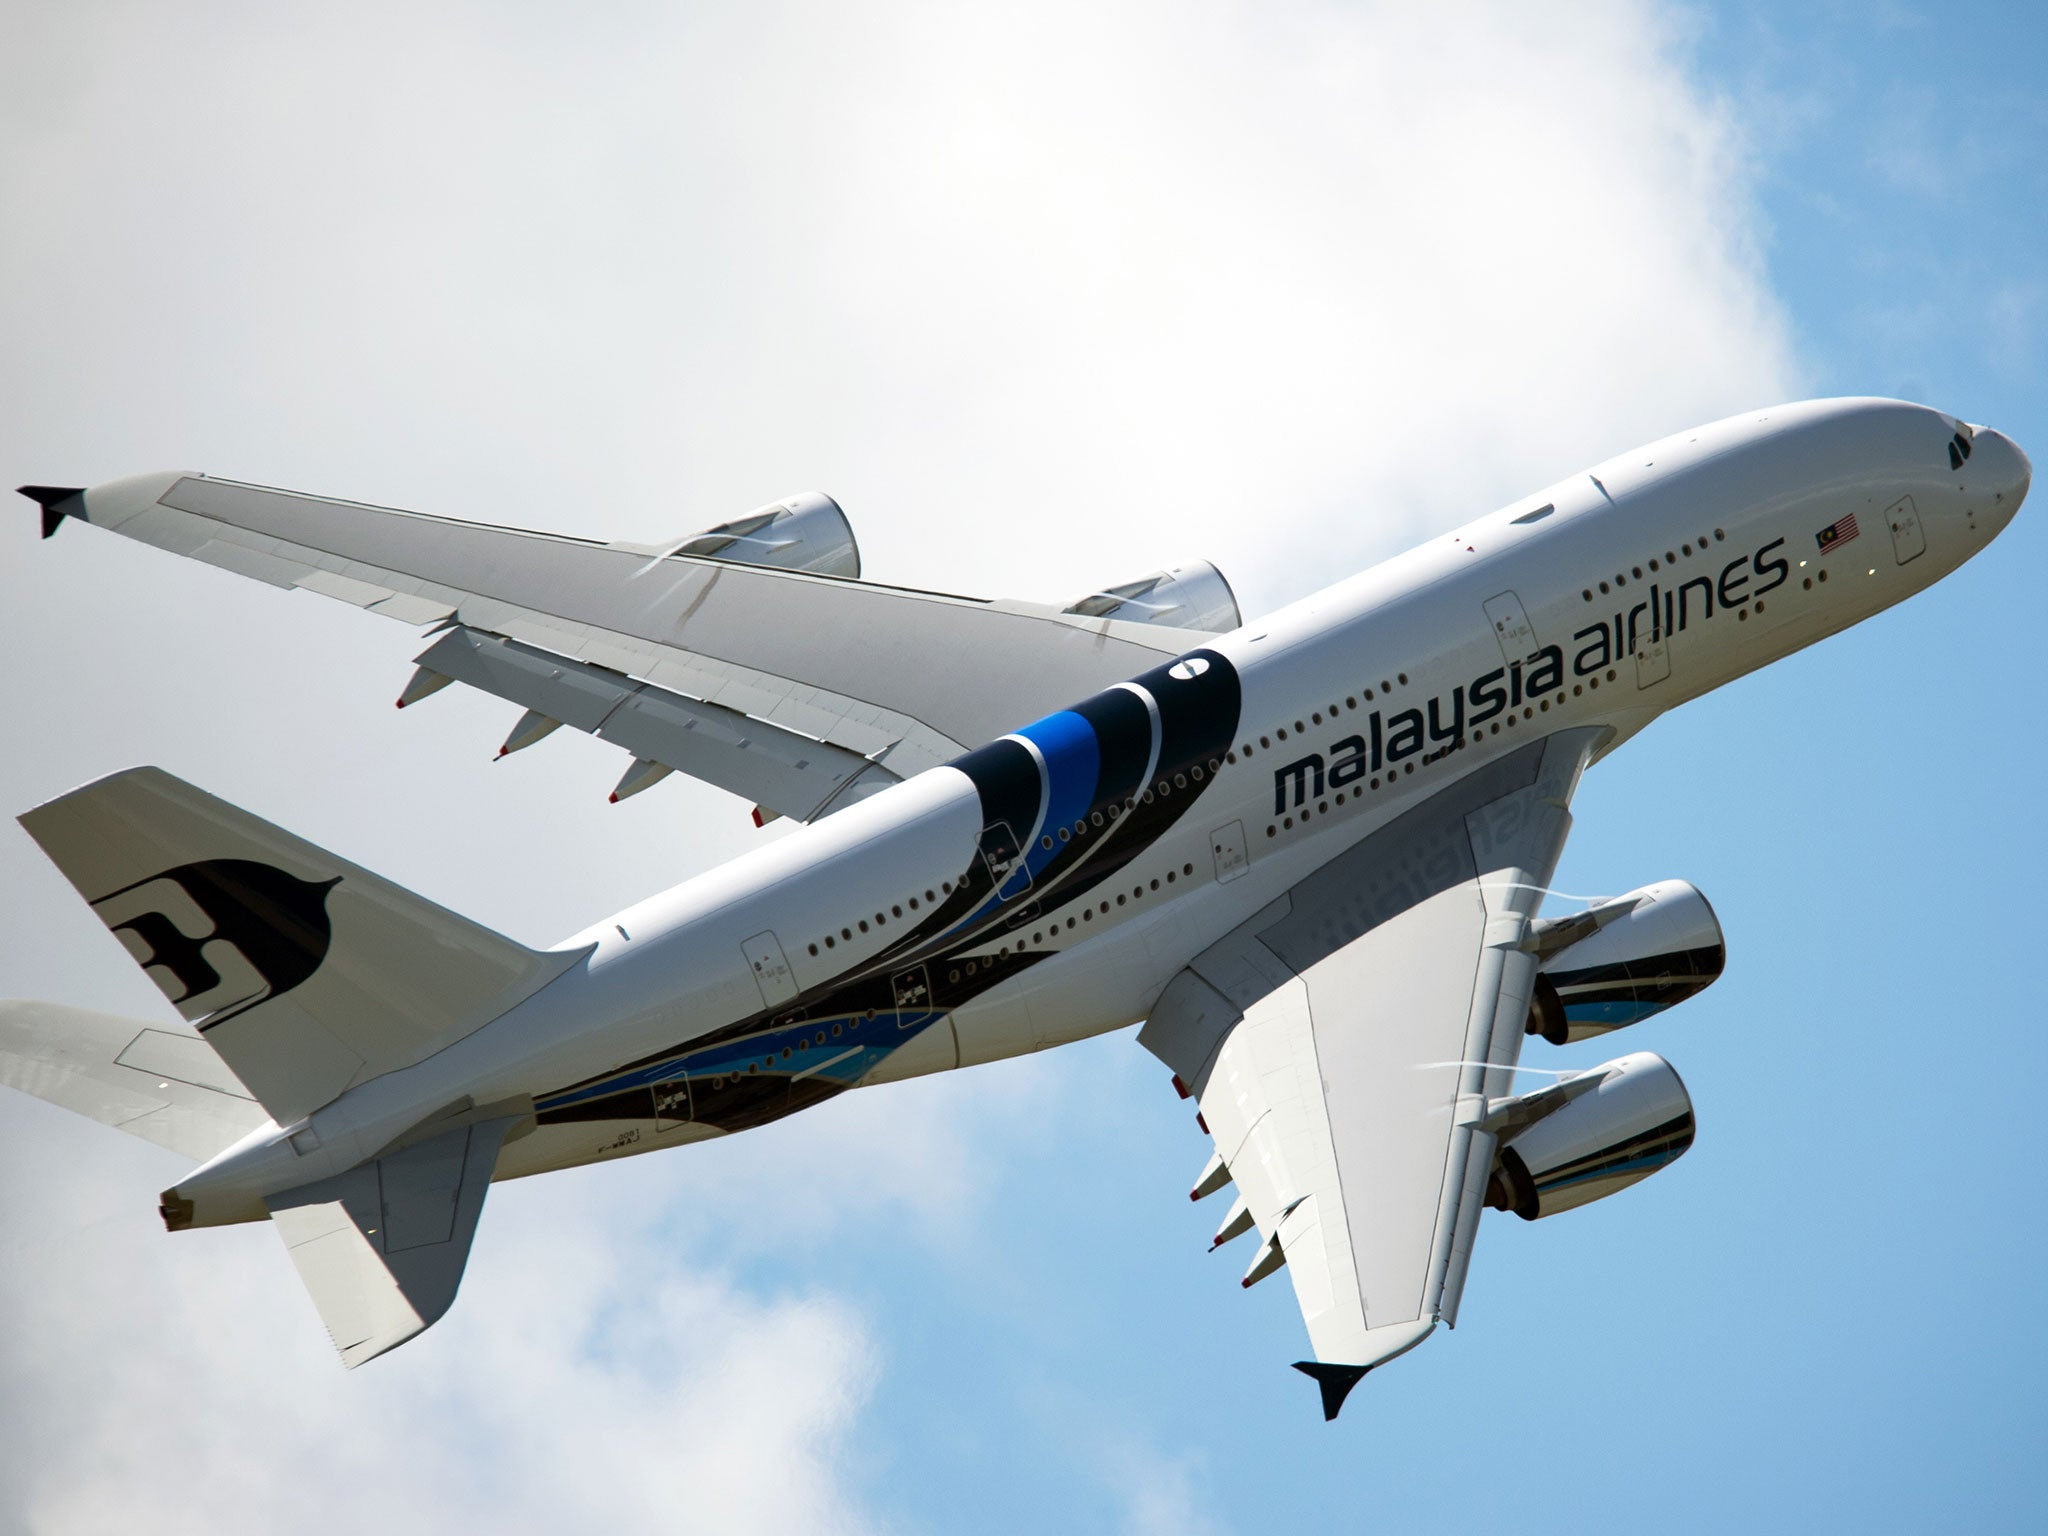 Actions Before Downing Of Malaysian Passenger Jet